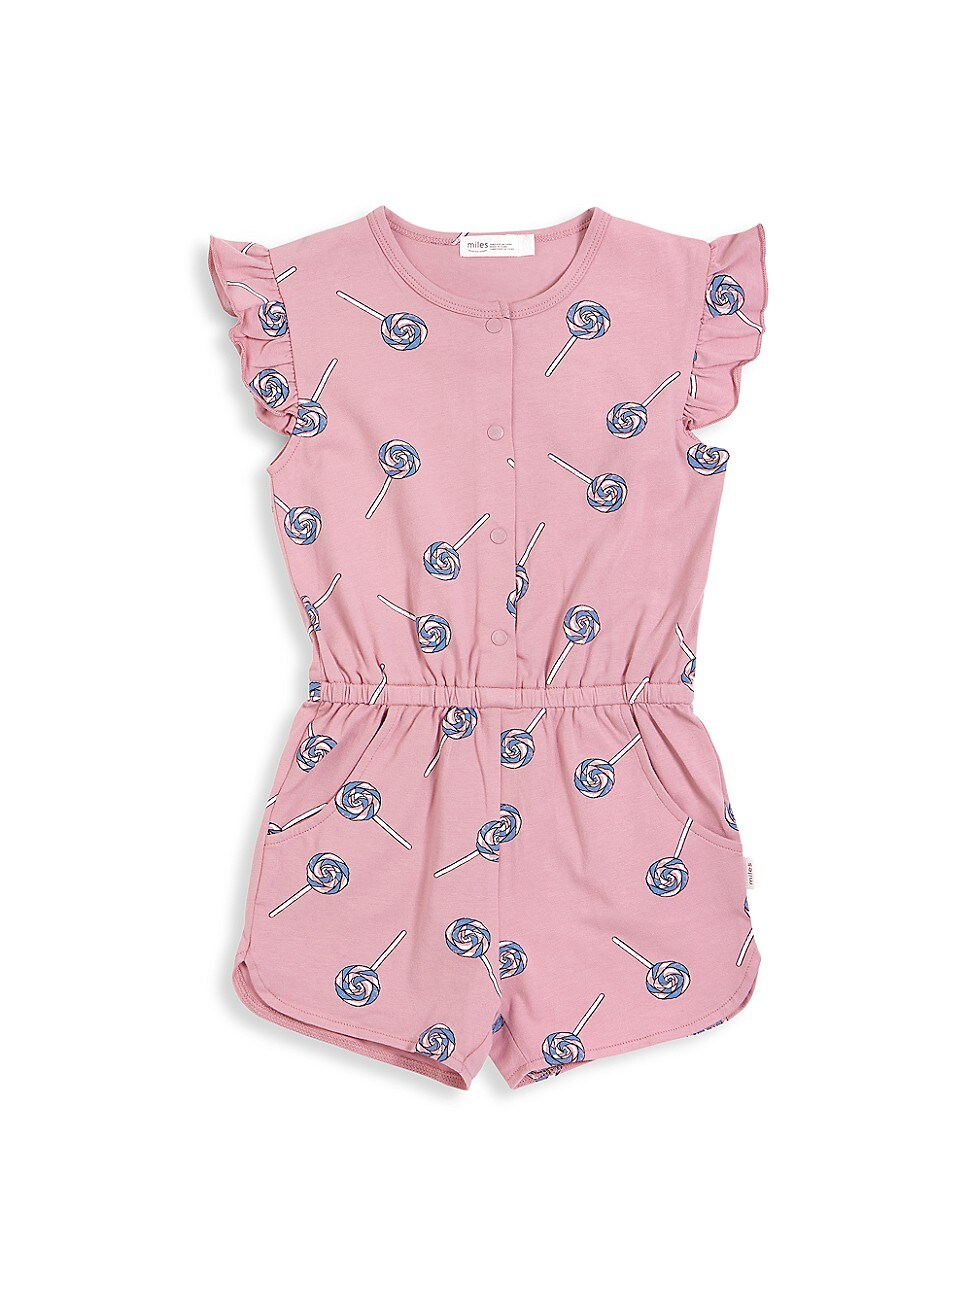 Miles Baby Climbing clotheses BABY GIRL'S CANDY SKY LOLLIPOP-PRINT ROMPER